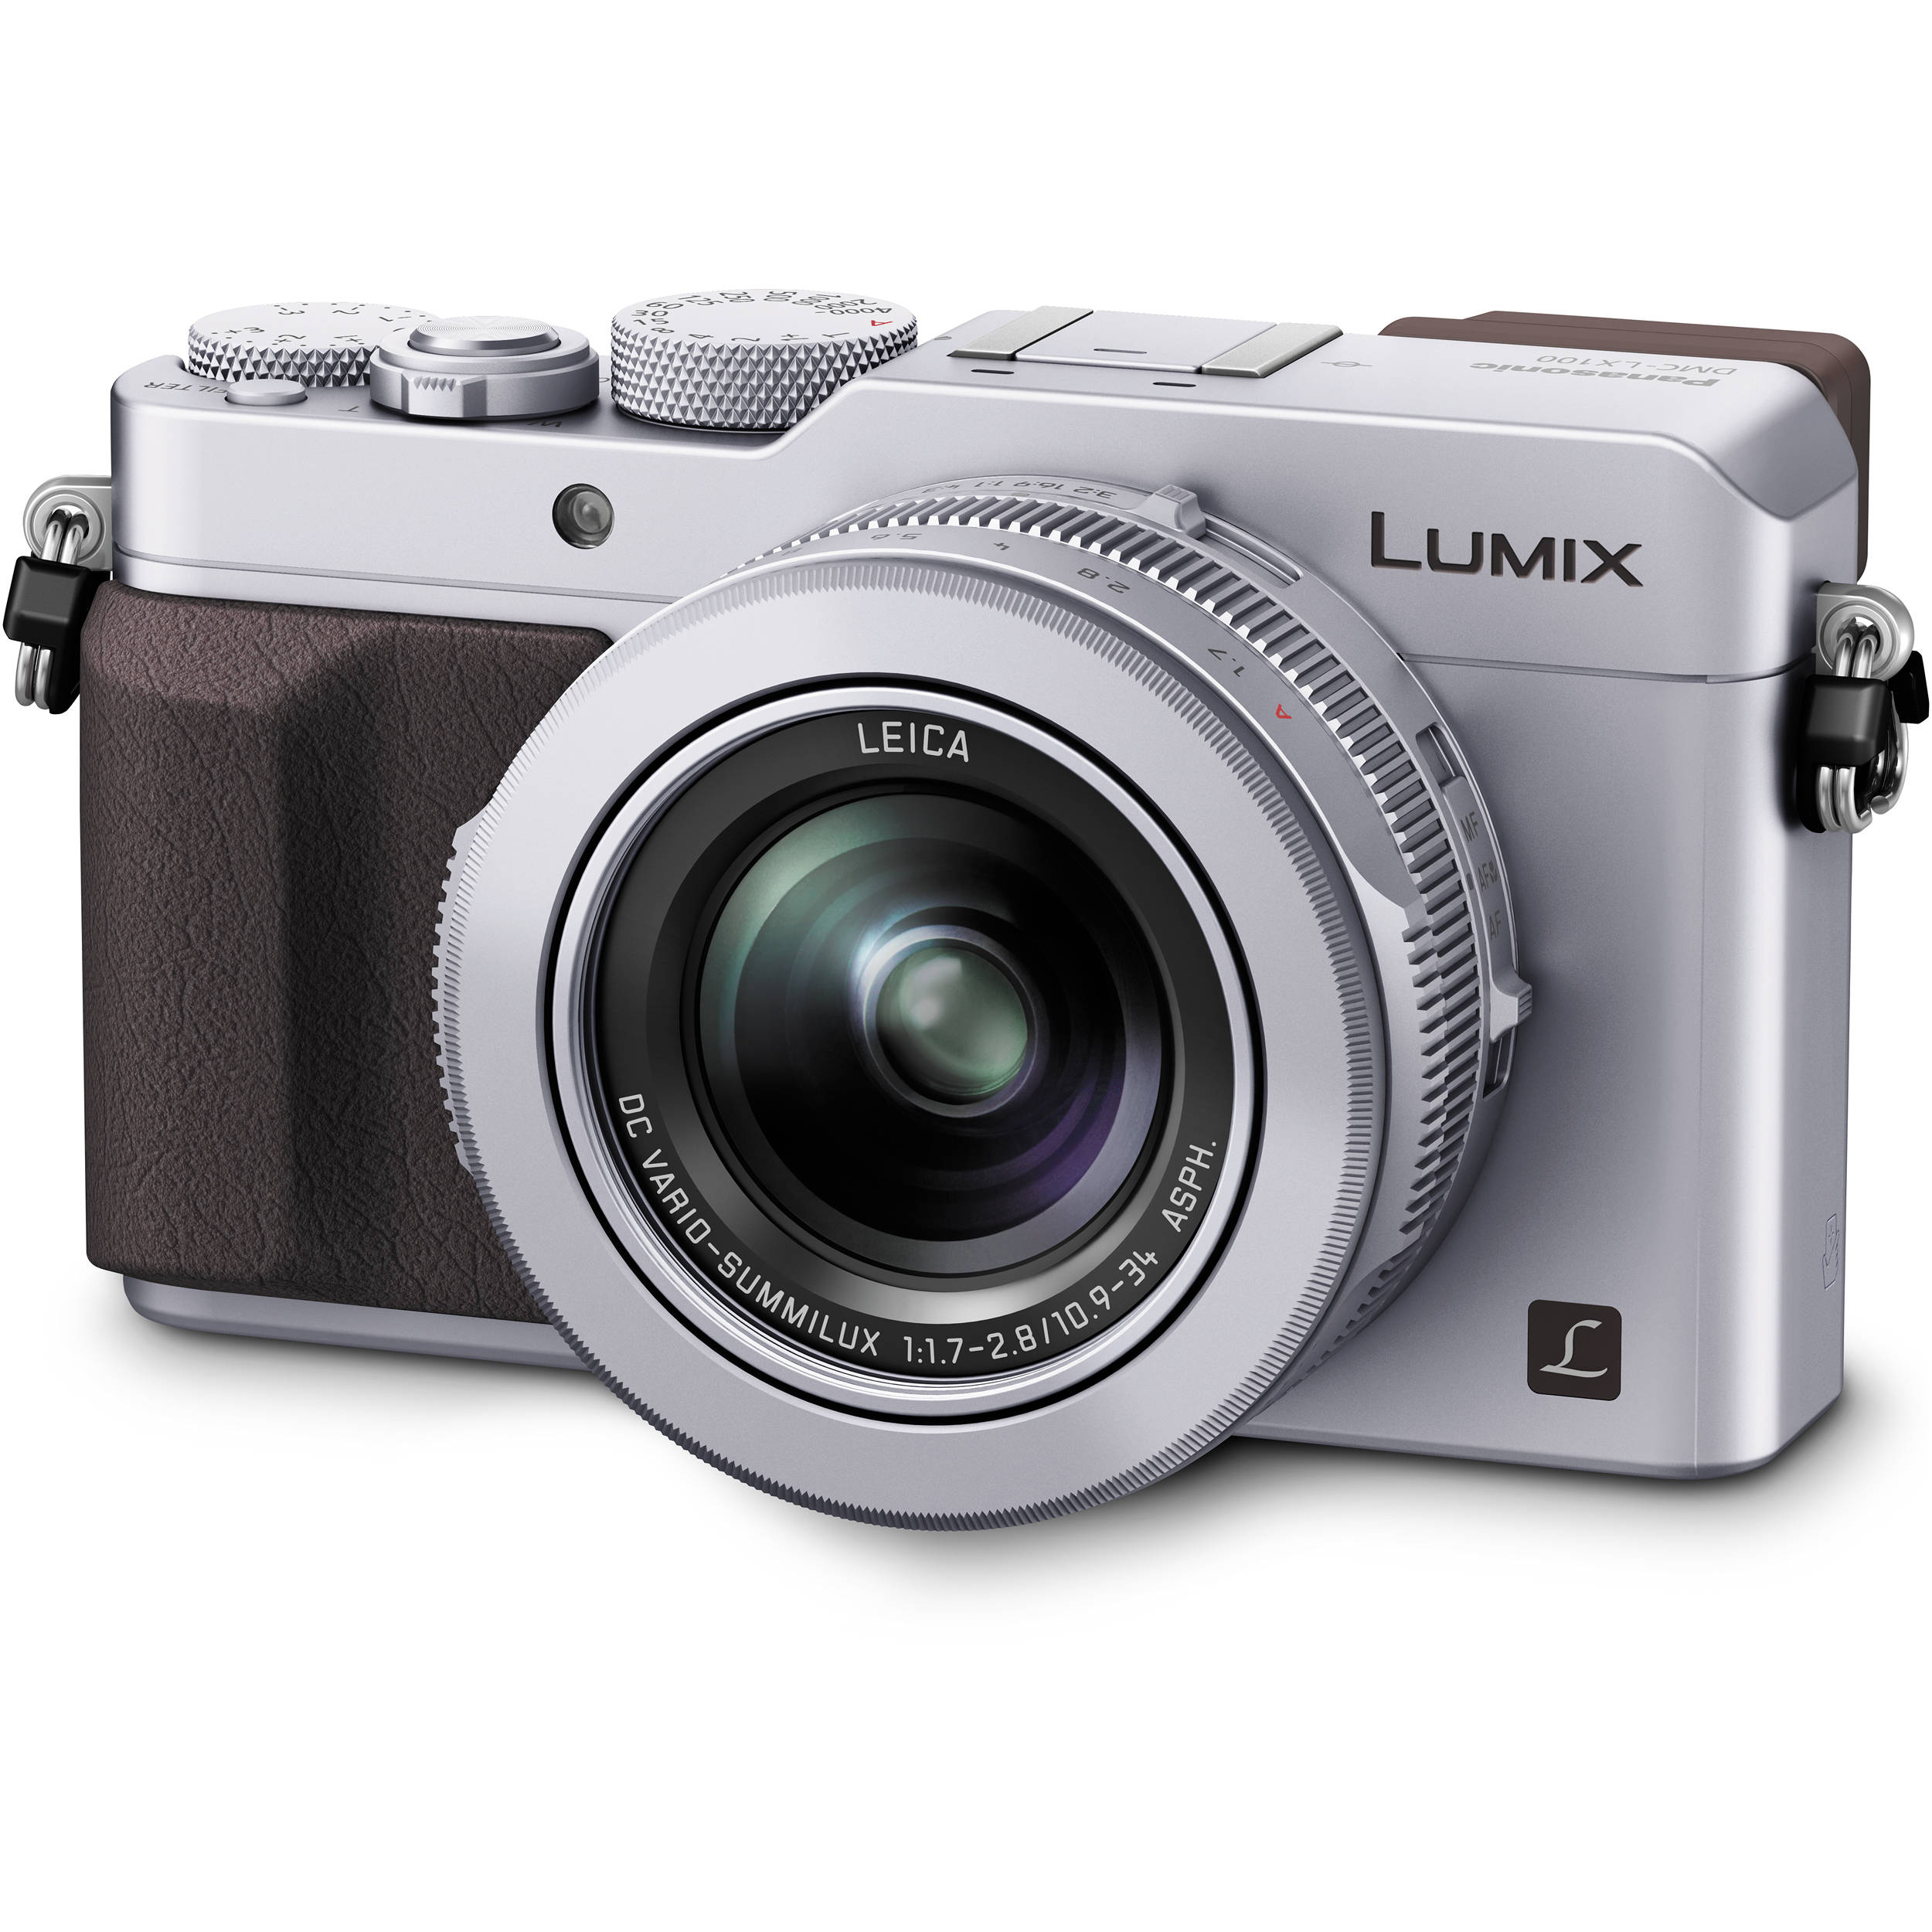 Panasonic Lumix DMC-LX100 Digital Camera (Silver) DMC-LX100S B&H